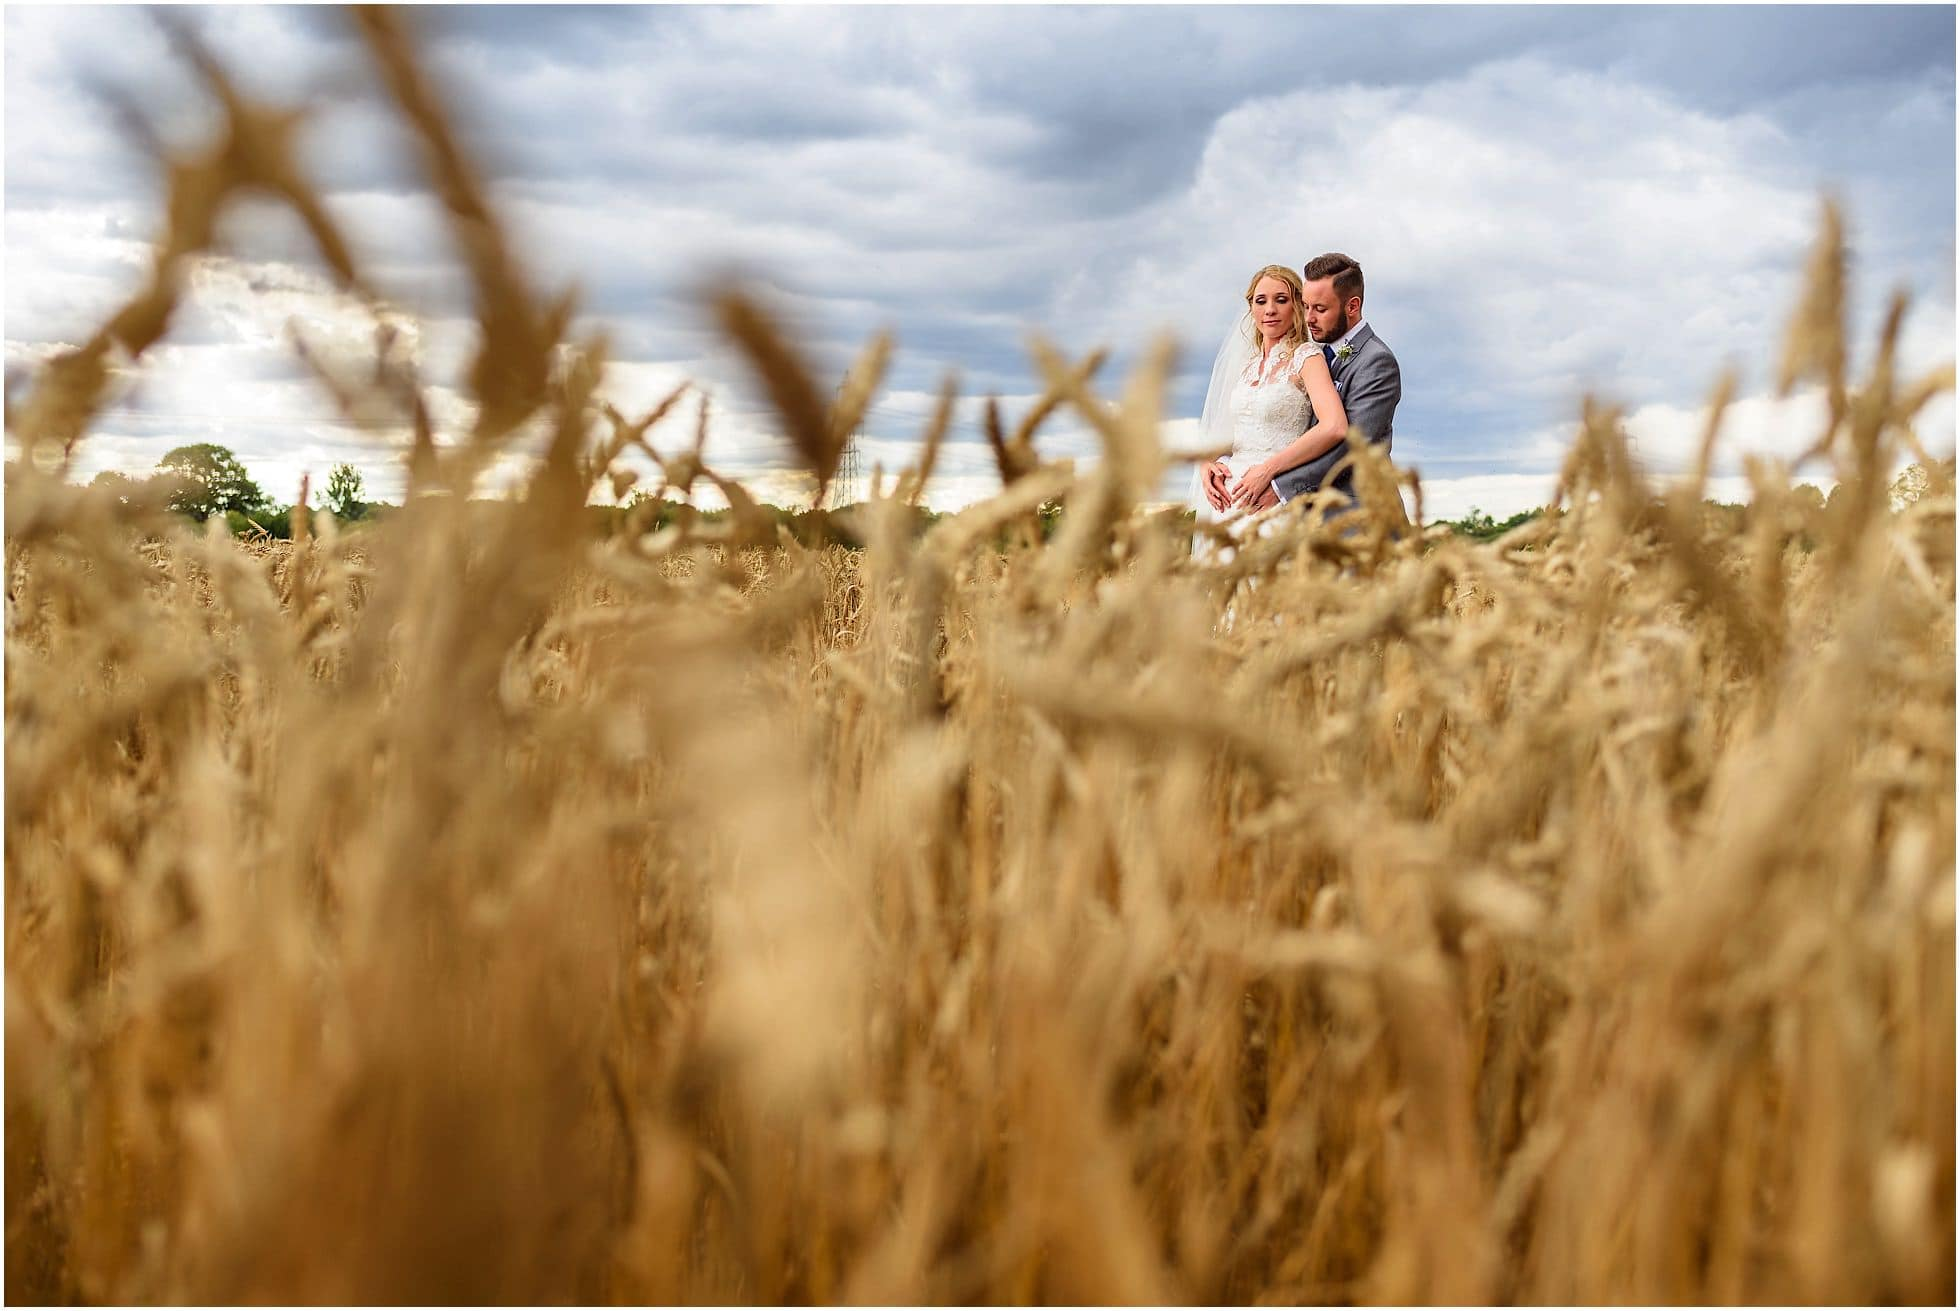 Corn field wedding portraits